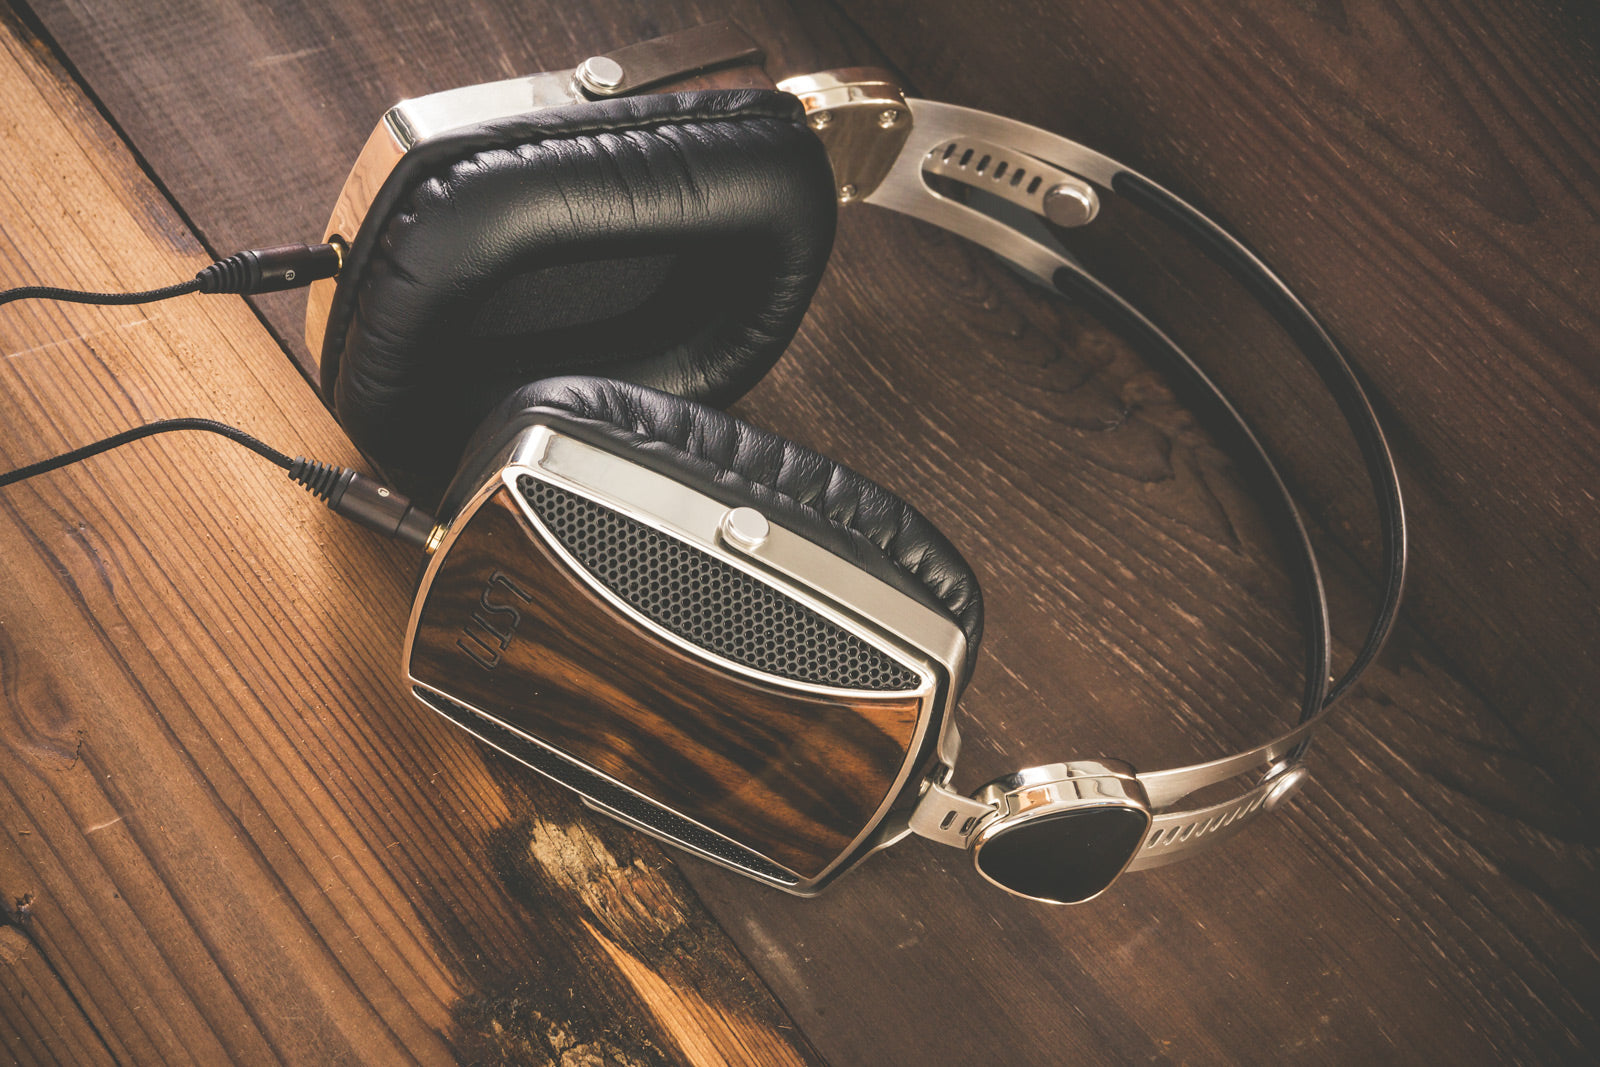 lstn sound encore headphones for corporate gifts and holiday gifts